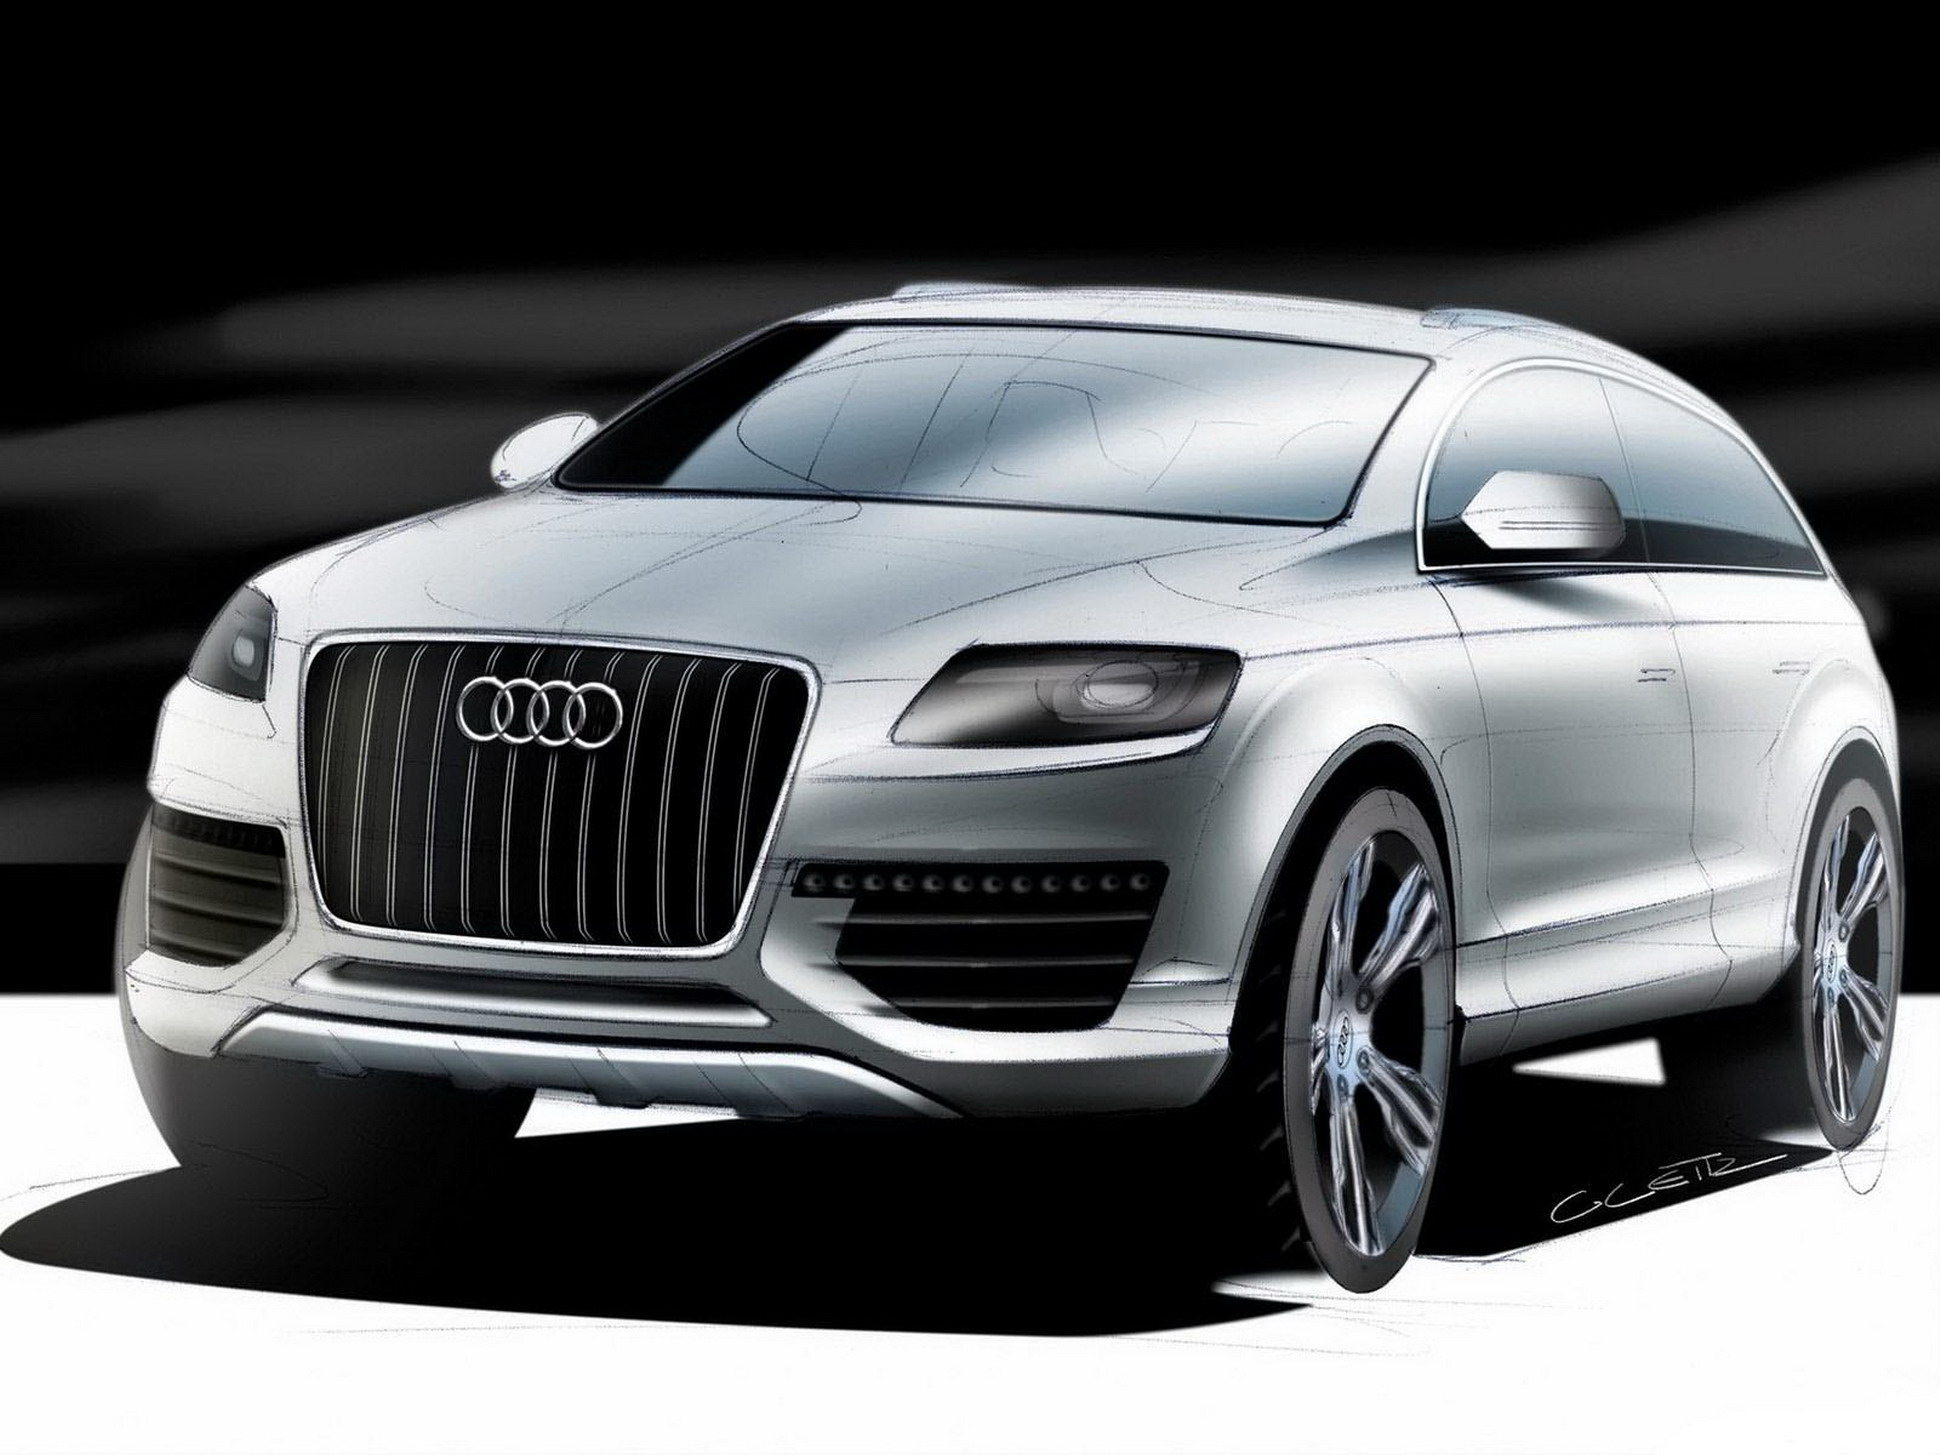 Audi hd images free download tamil mp3lio downloads